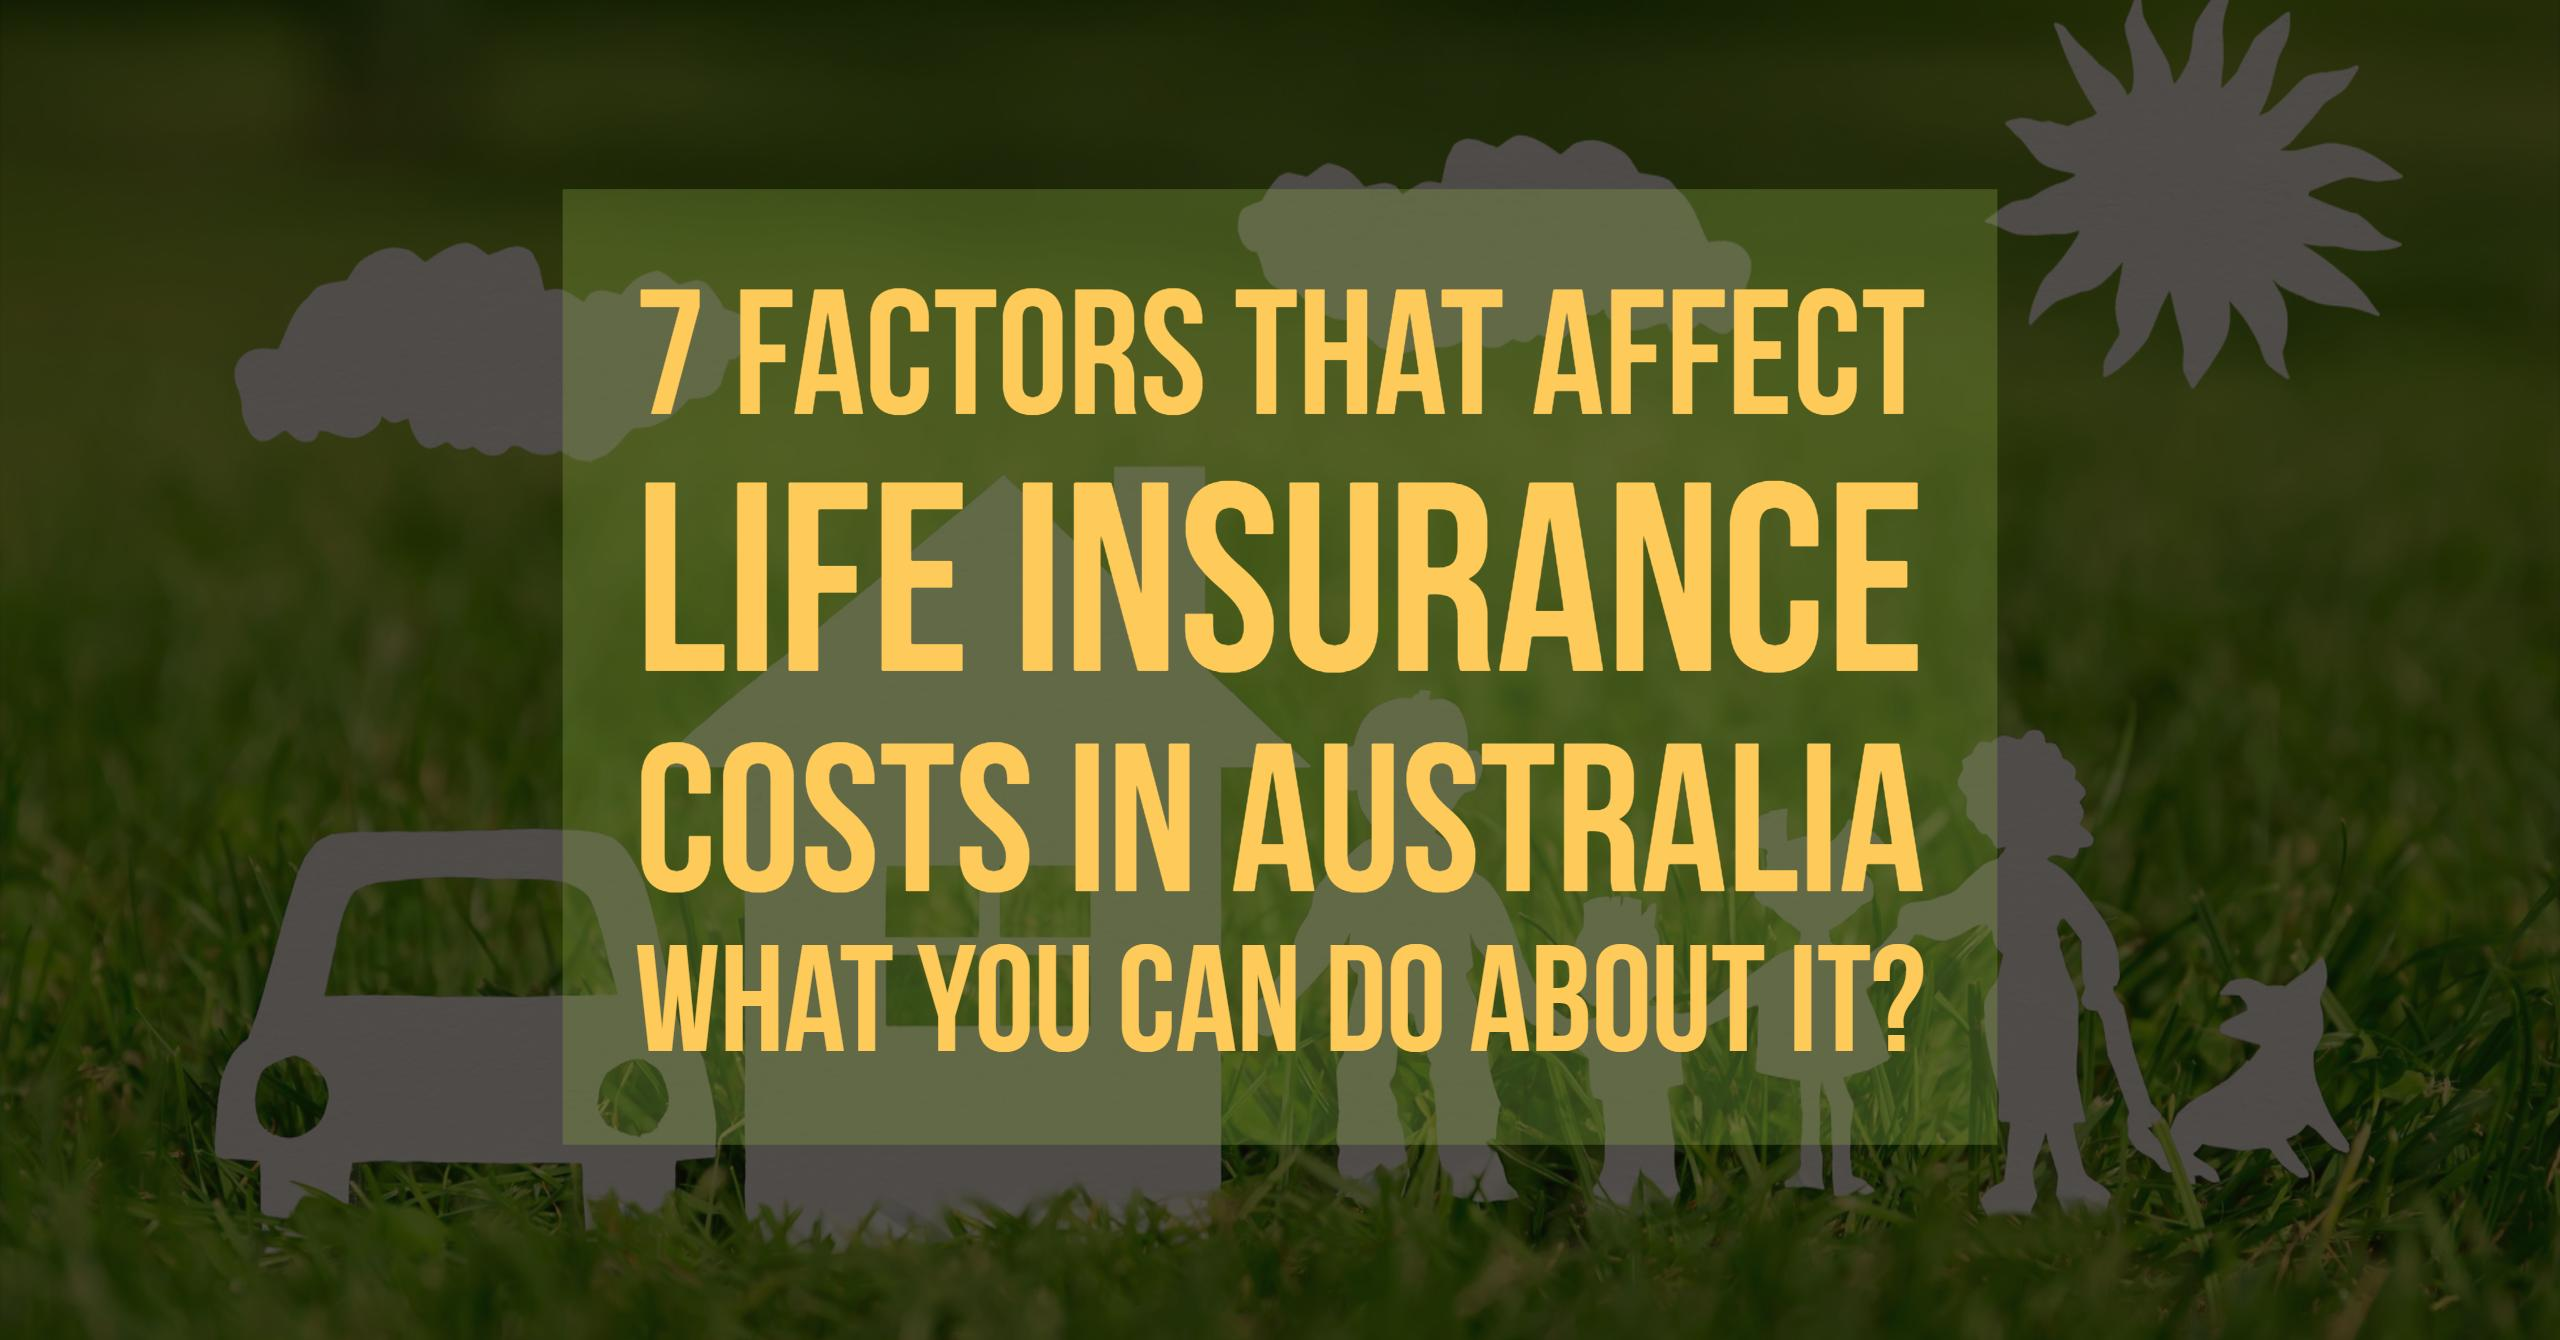 7-Factors-that-affect-Life-Insurance-Costs-in-Australia-[Infographic]